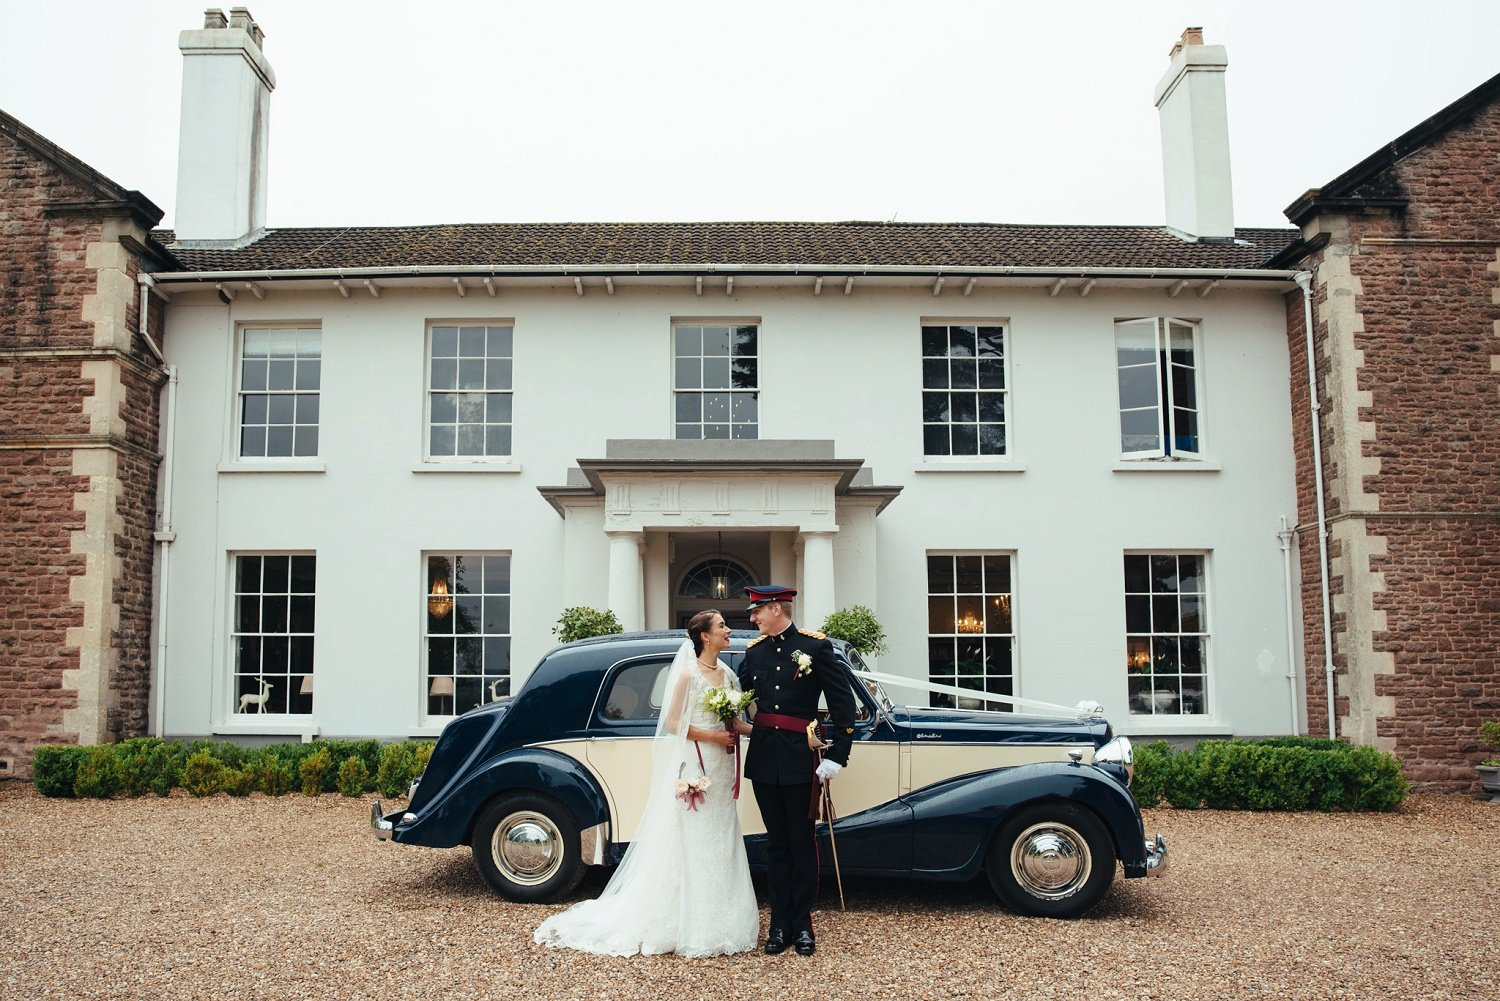 Wedding at Glewstone Court in Herefordshire